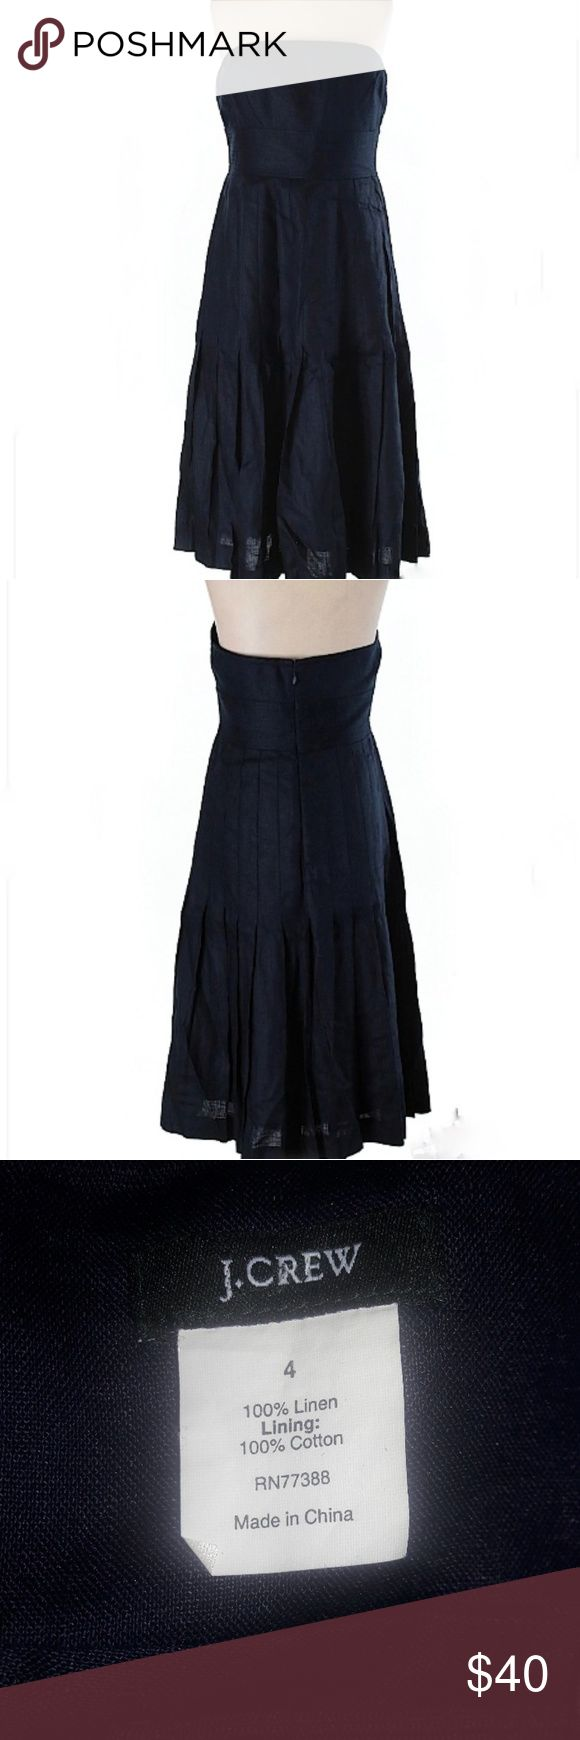 New J. Crew Lined Linen Dress Strapless Navy Blue New, never worn size 4 J Crew 100% linen navy blue casual strapless dress. Is pleated from the waist down. Lining is 100% cotton. Laying flat, underarm to underarm is approximately 15 inches.  From top to bottom, dress is approximately 32 inches in length. All items are from a pet free, smoke free home and will ship same or next day. J. Crew Dresses Strapless